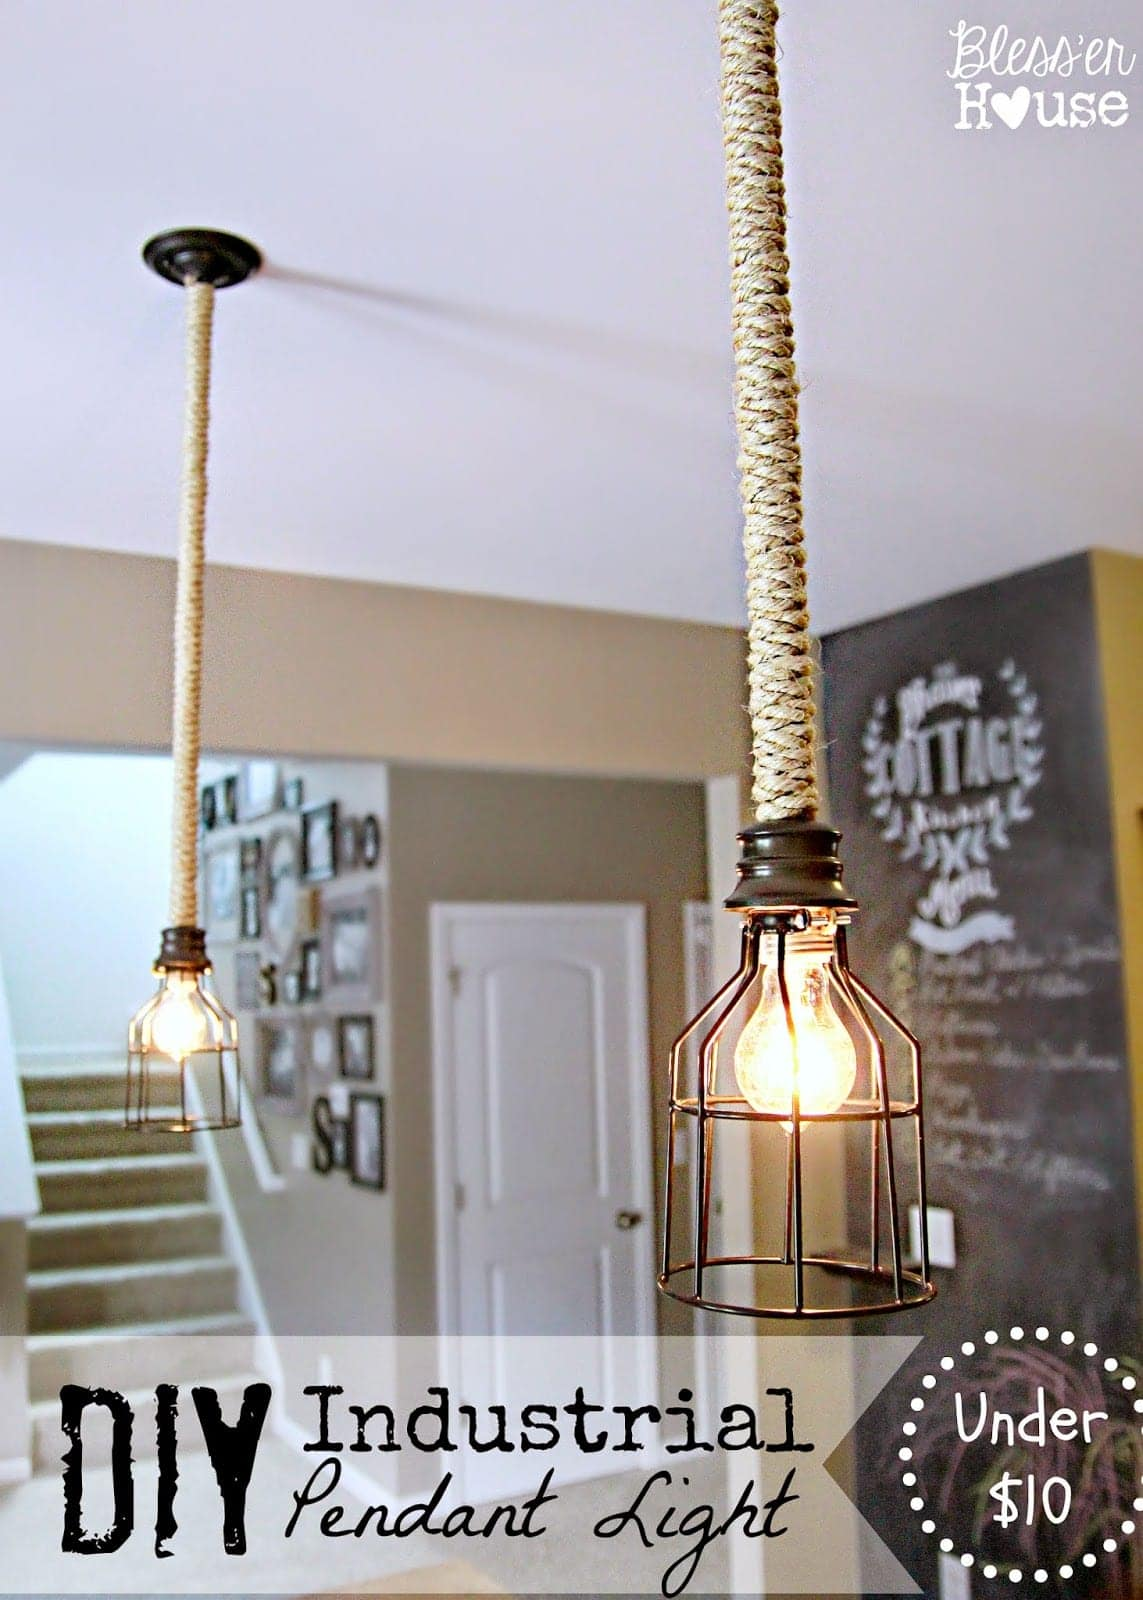 Industrial Style Light Fixtures Home Diy Industrial Pendant Light For Under 10 Bless 39er House